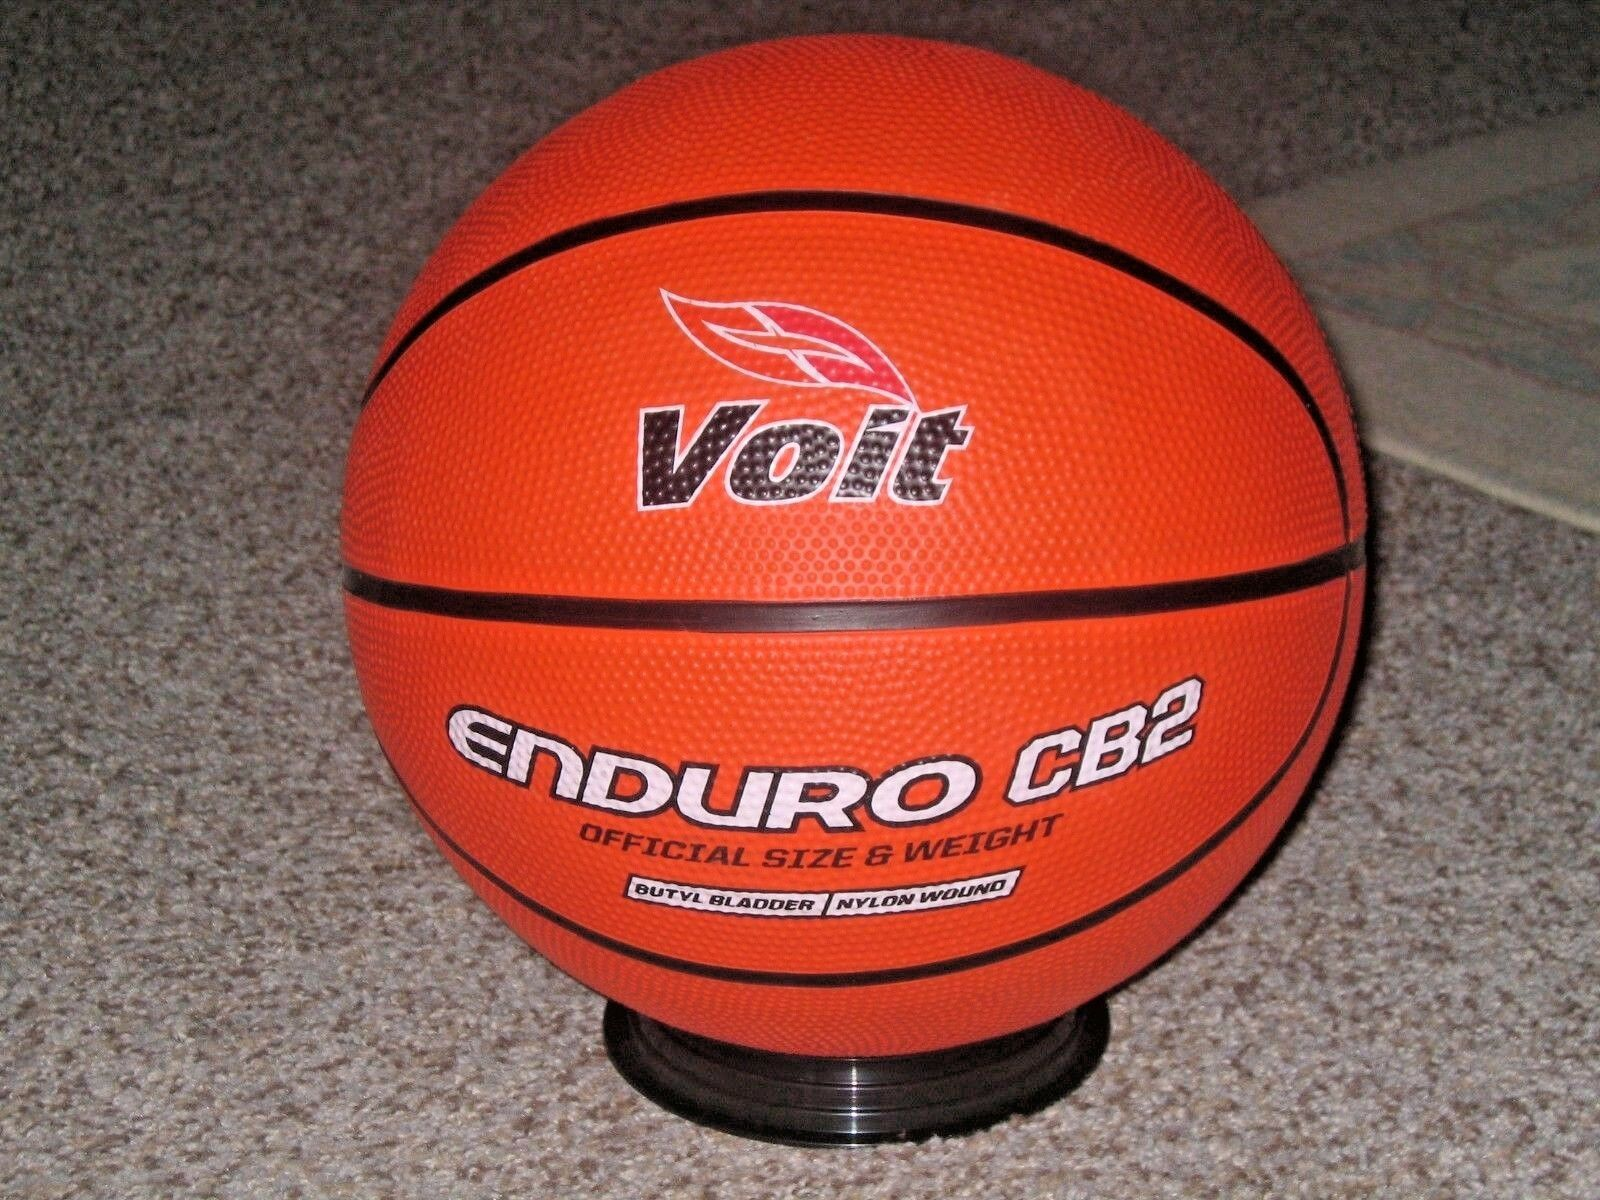 20 Display Cup Holder Stand For Basketball Soccer Ball Volleyball